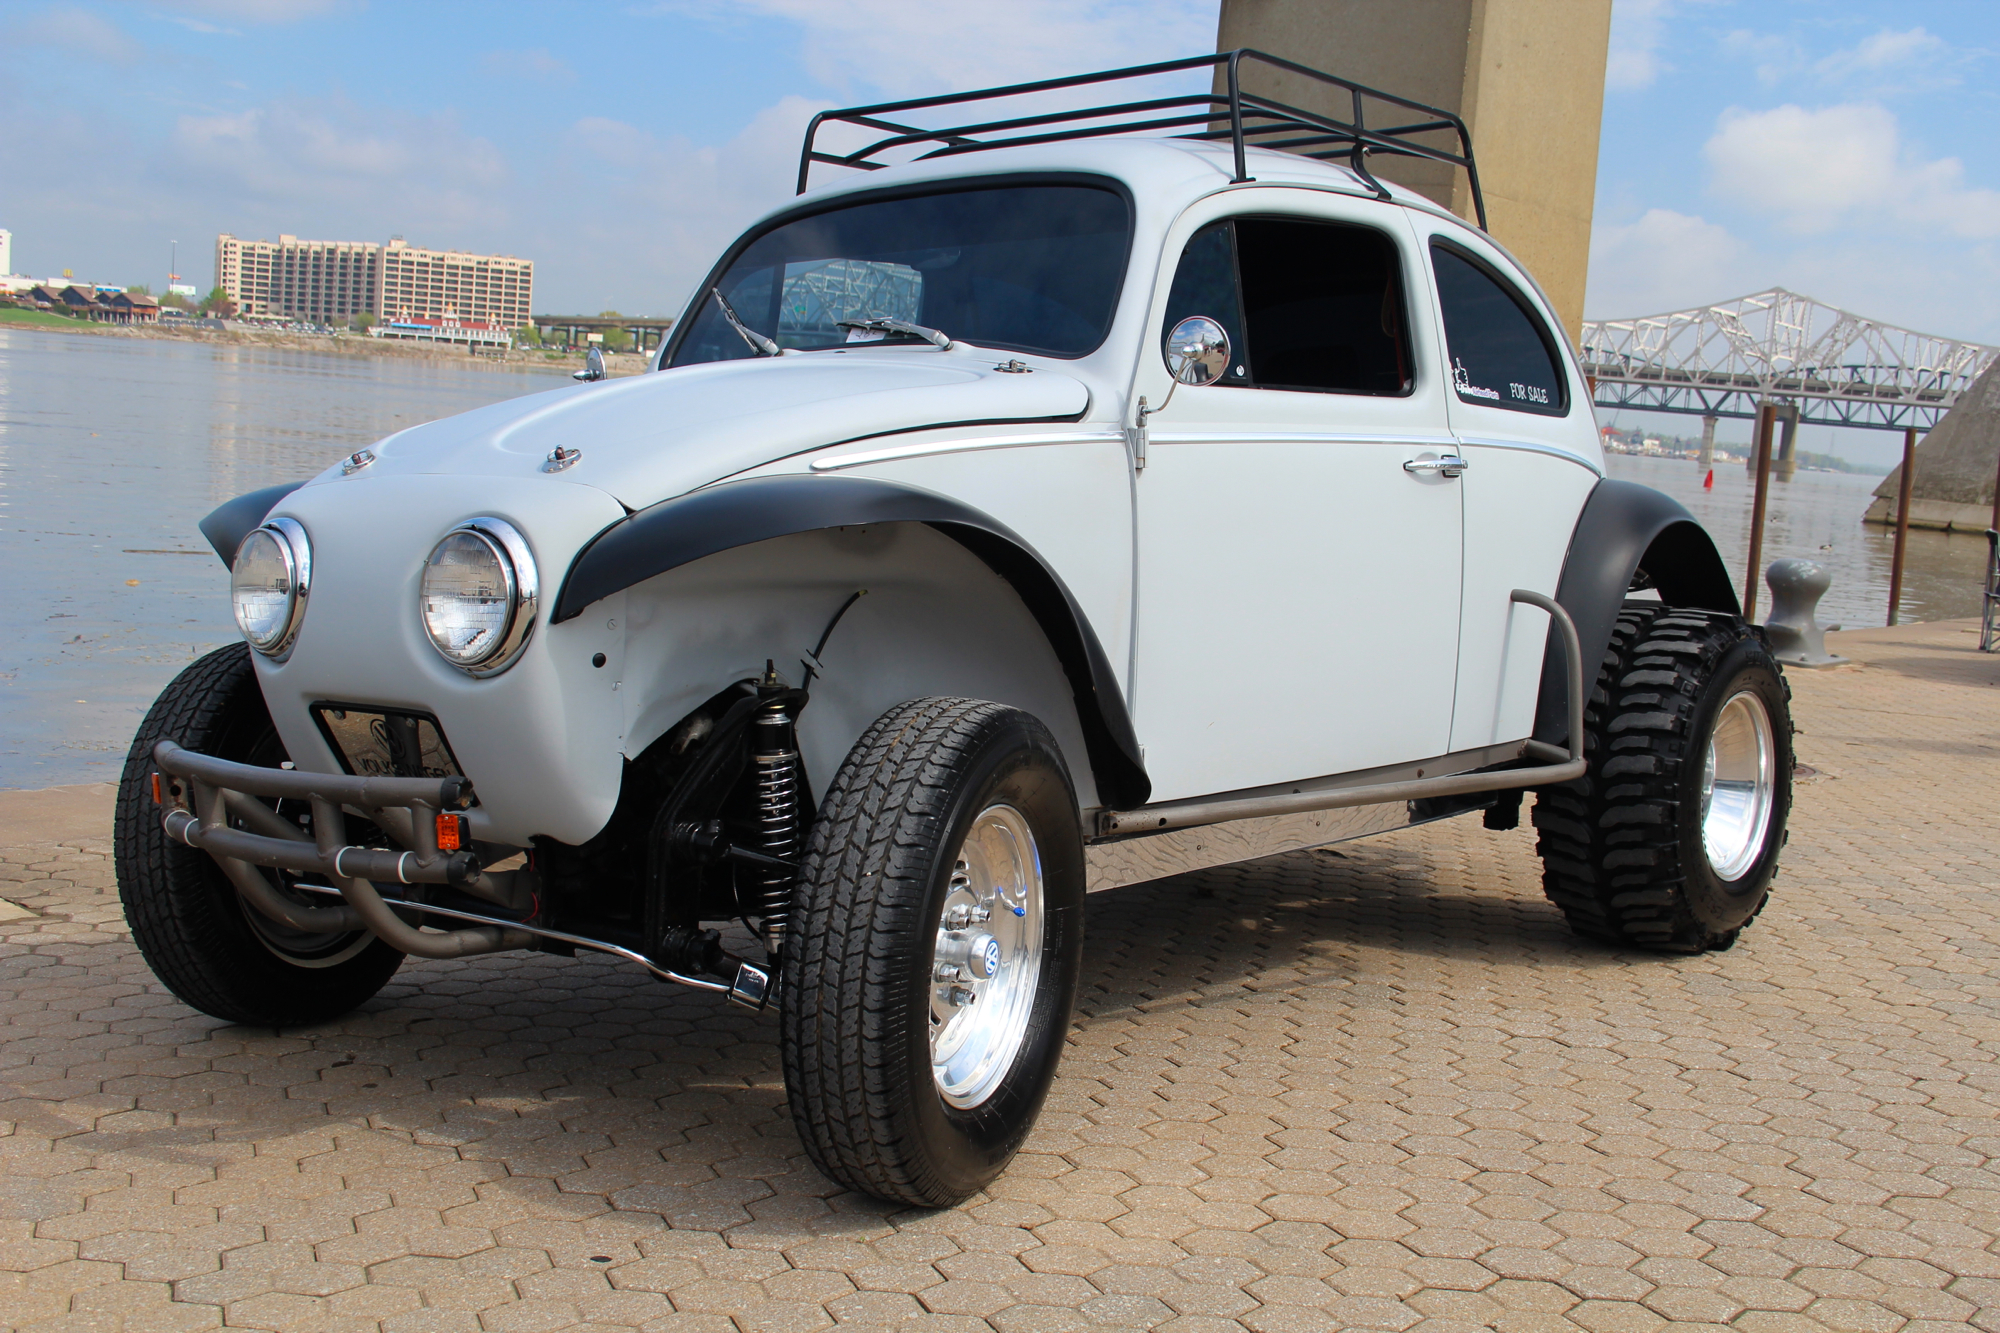 VOLKSWAGON baja offroad race racing bug beetle baja Bug beetle g also 2002 e2 86 922005 Ferrari Enzo 2 in addition Audi Unveils R8 Lms Gt4 further Car Day Porsche 993 Gt2 Love Air additionally Lamborghini Huracan Experience. on race car s